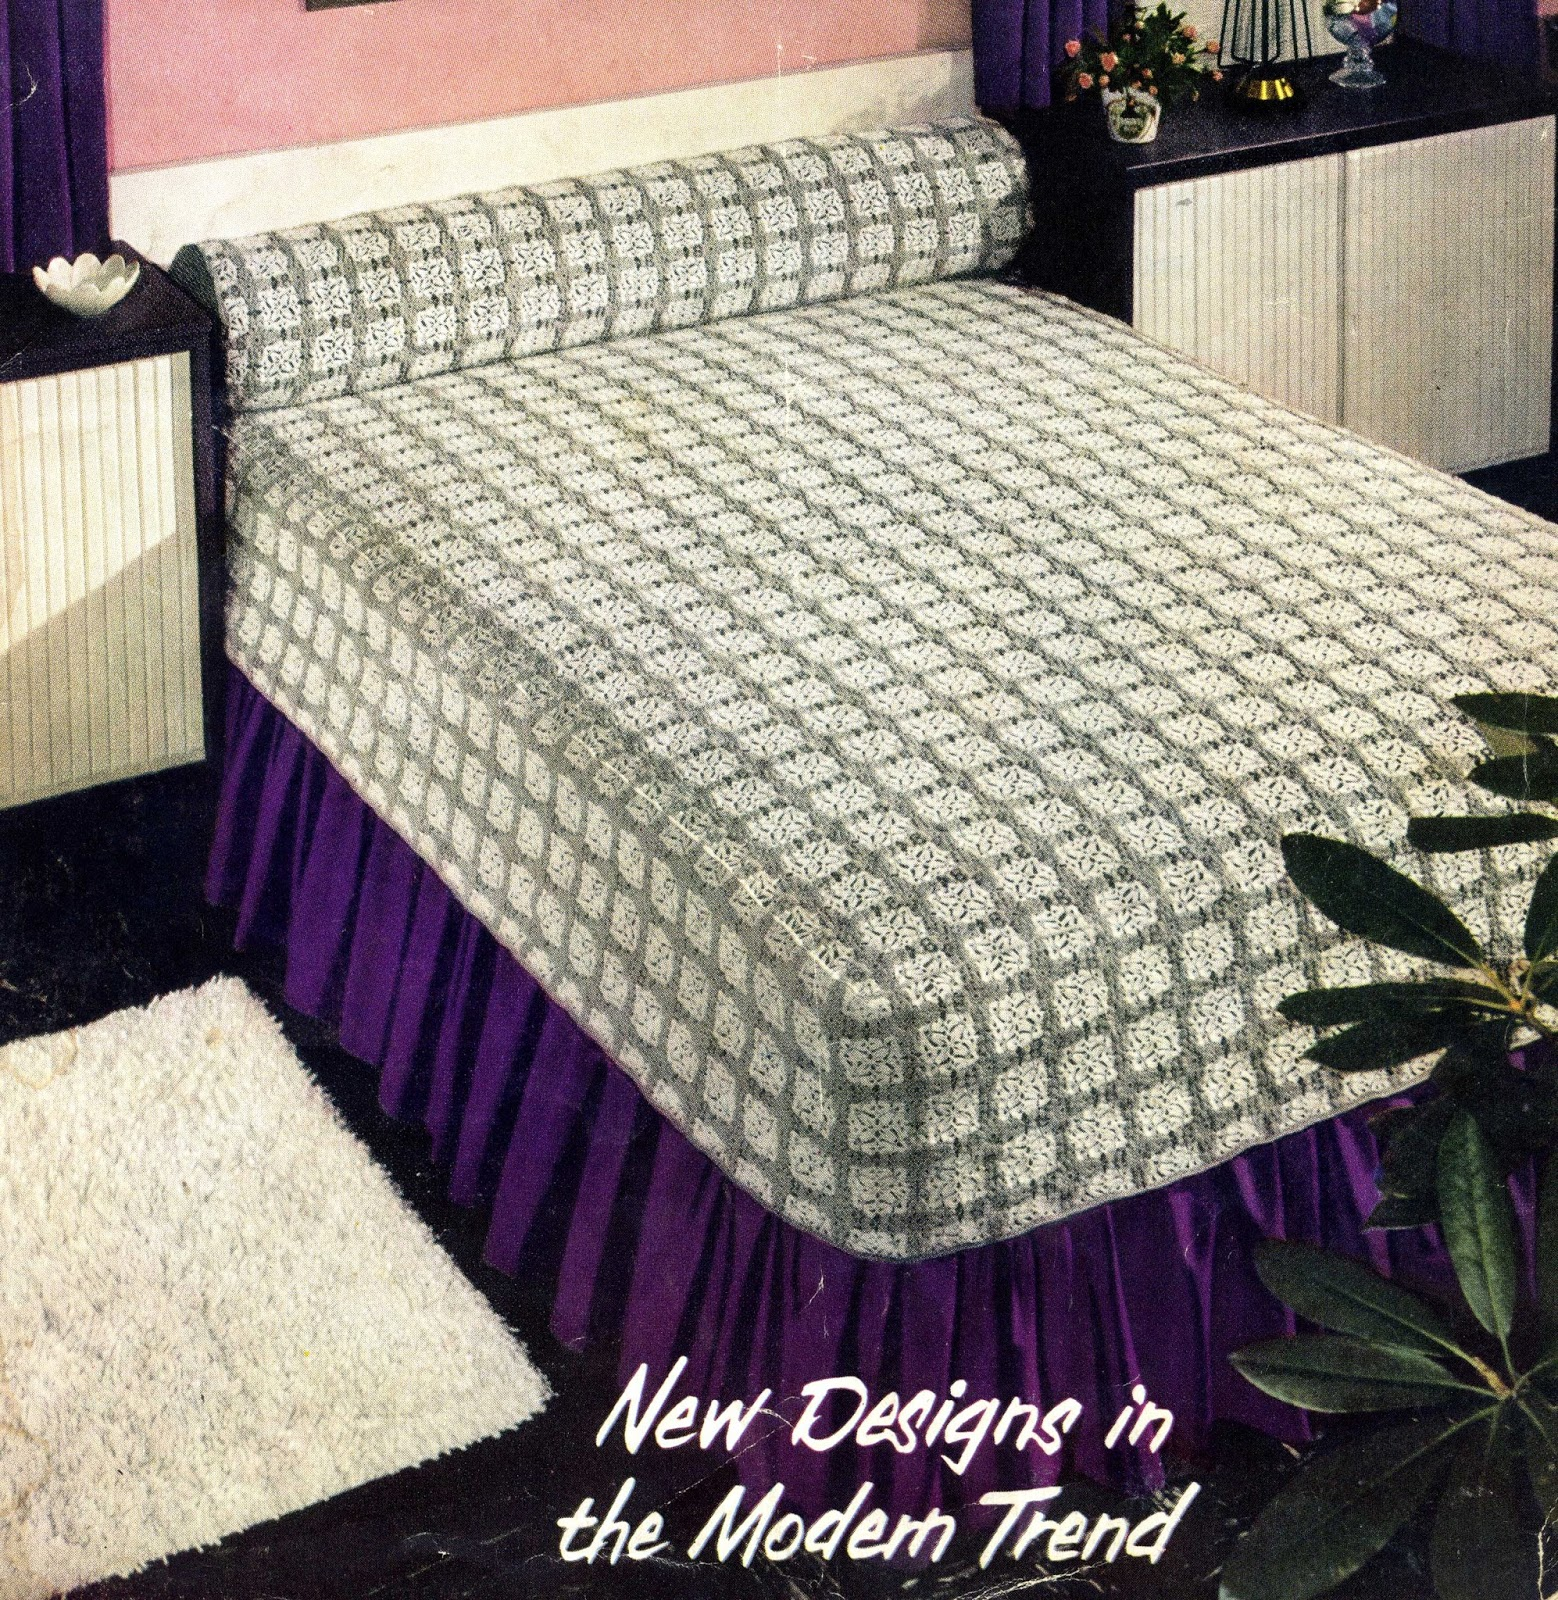 Donnas crochet designs blog of free patterns maryland modern here is my latest free pattern from my collection it is a crochet pattern for this lovely bedspread it is called maryland modern bedspread bankloansurffo Images